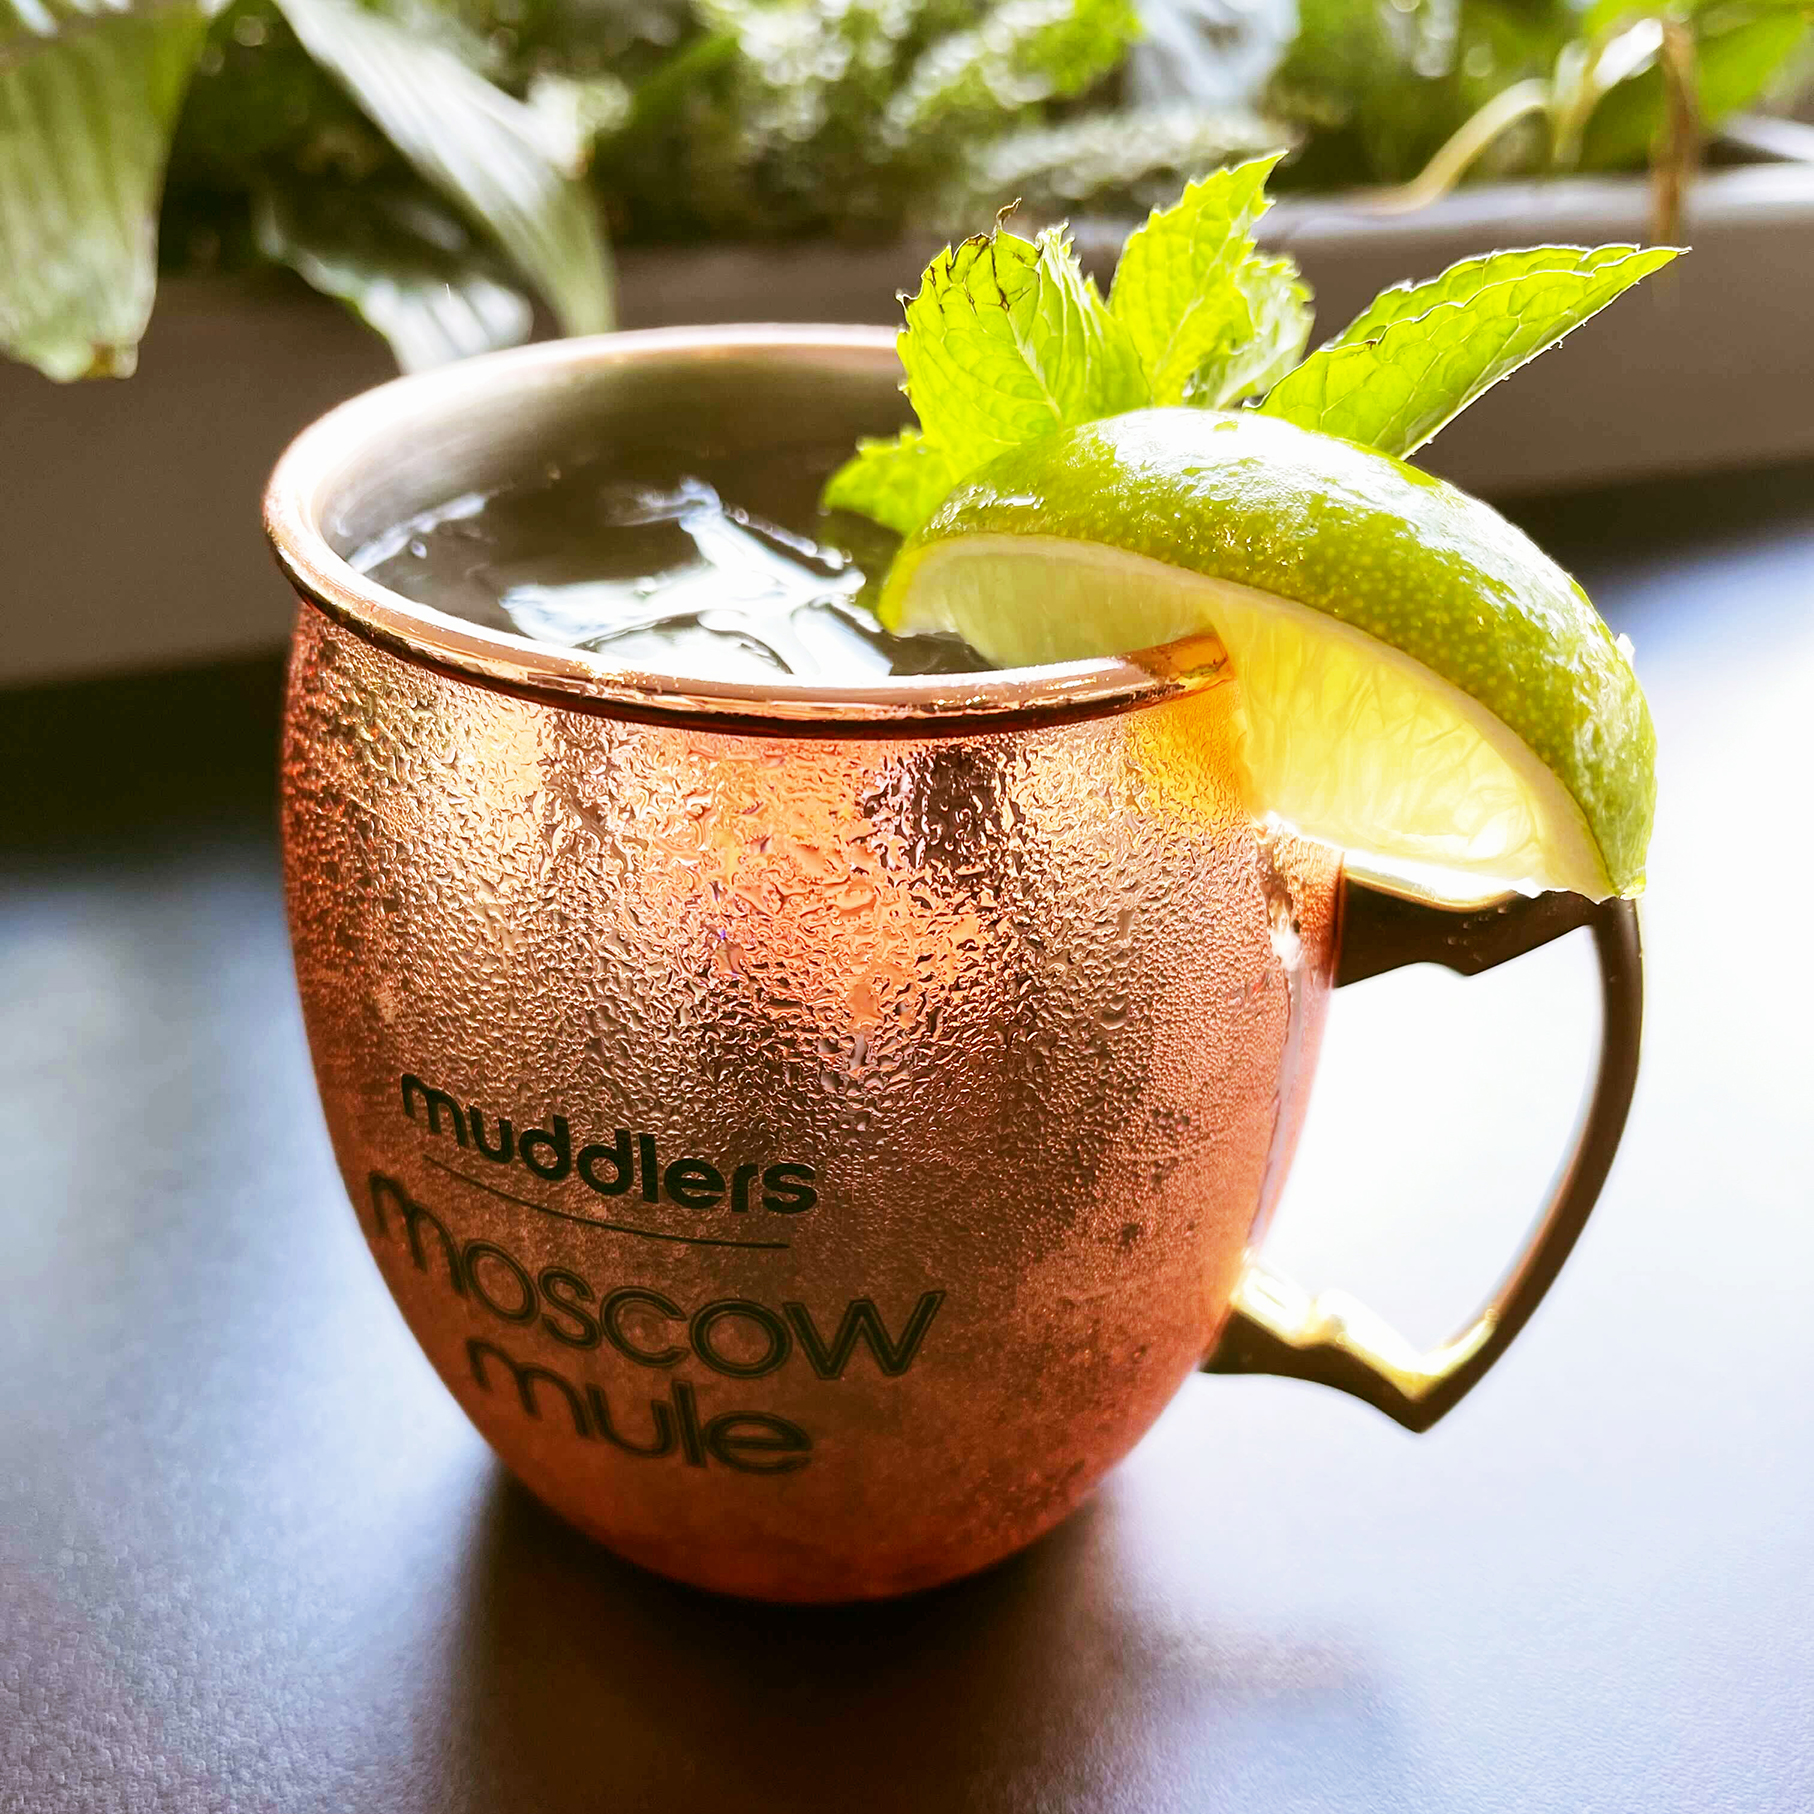 P49 Muddlers: Moscow Mule